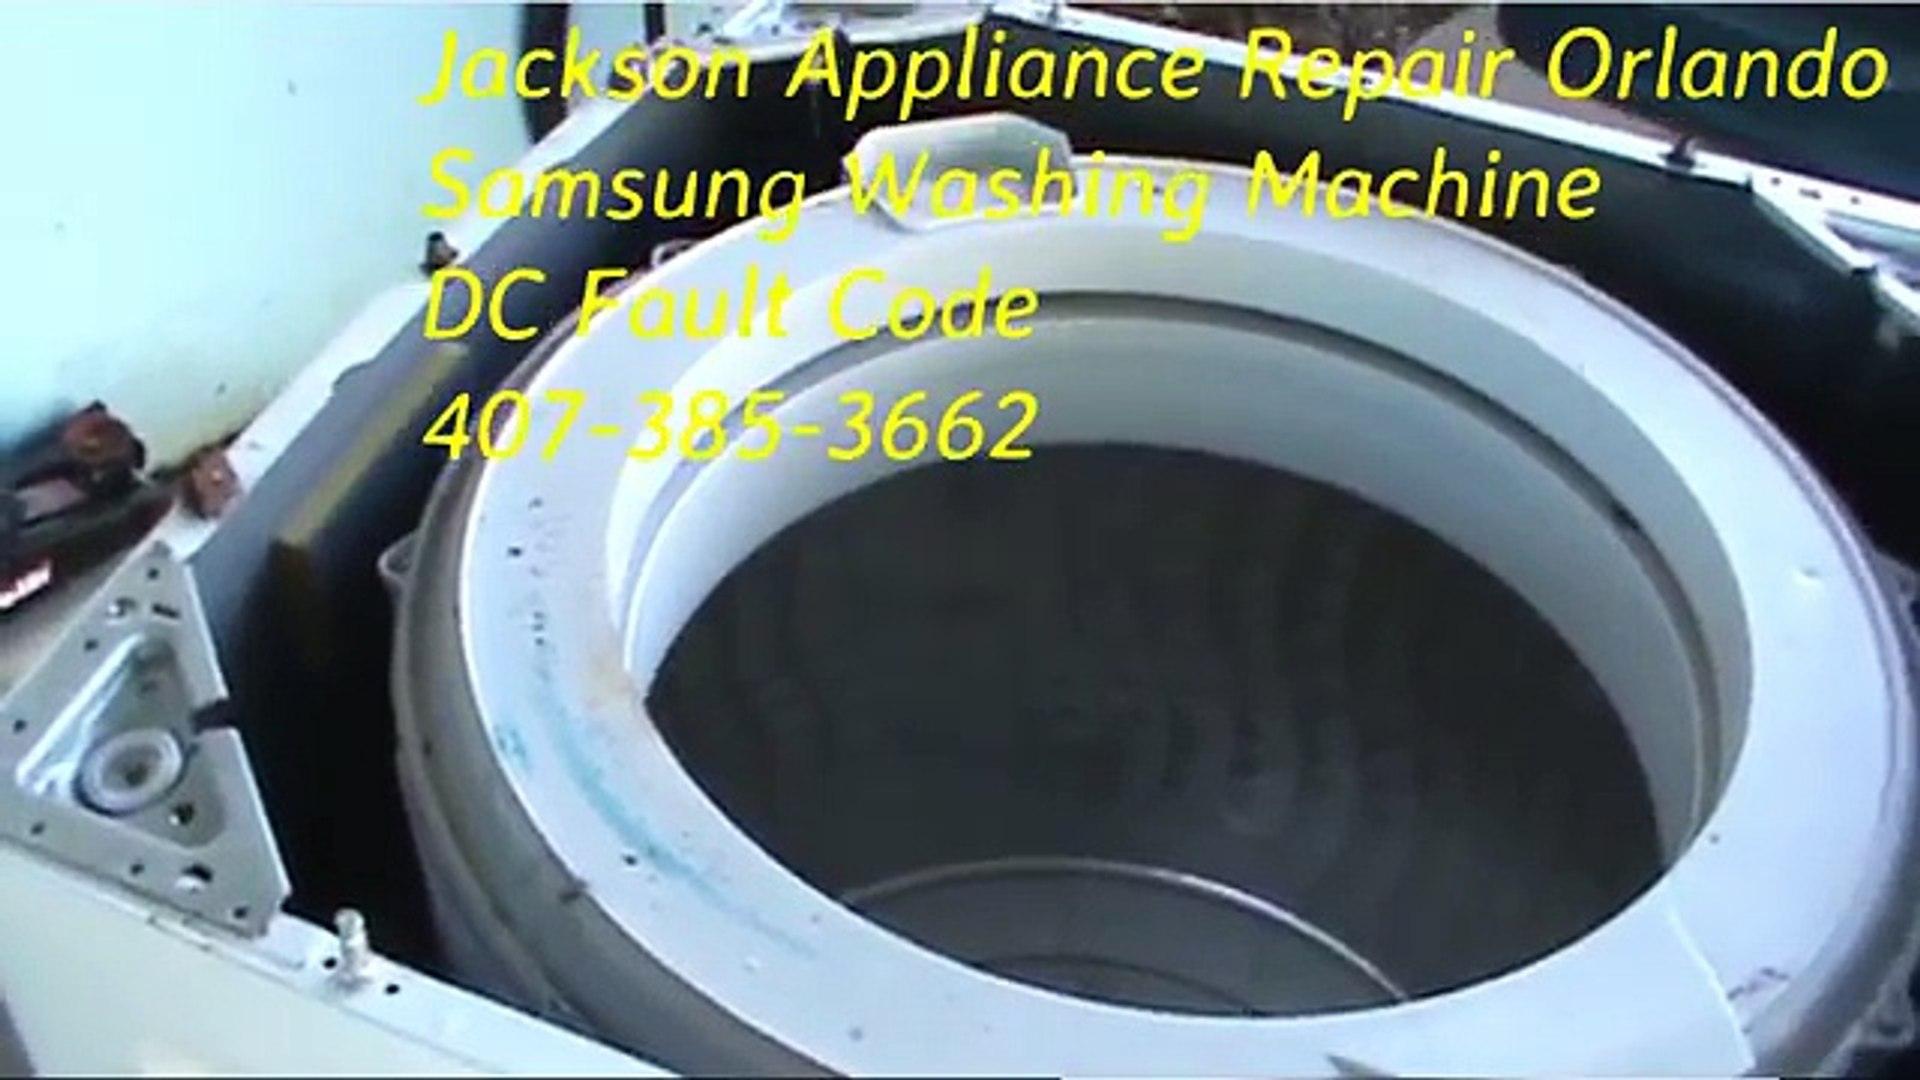 Samsung Washer Display Codes